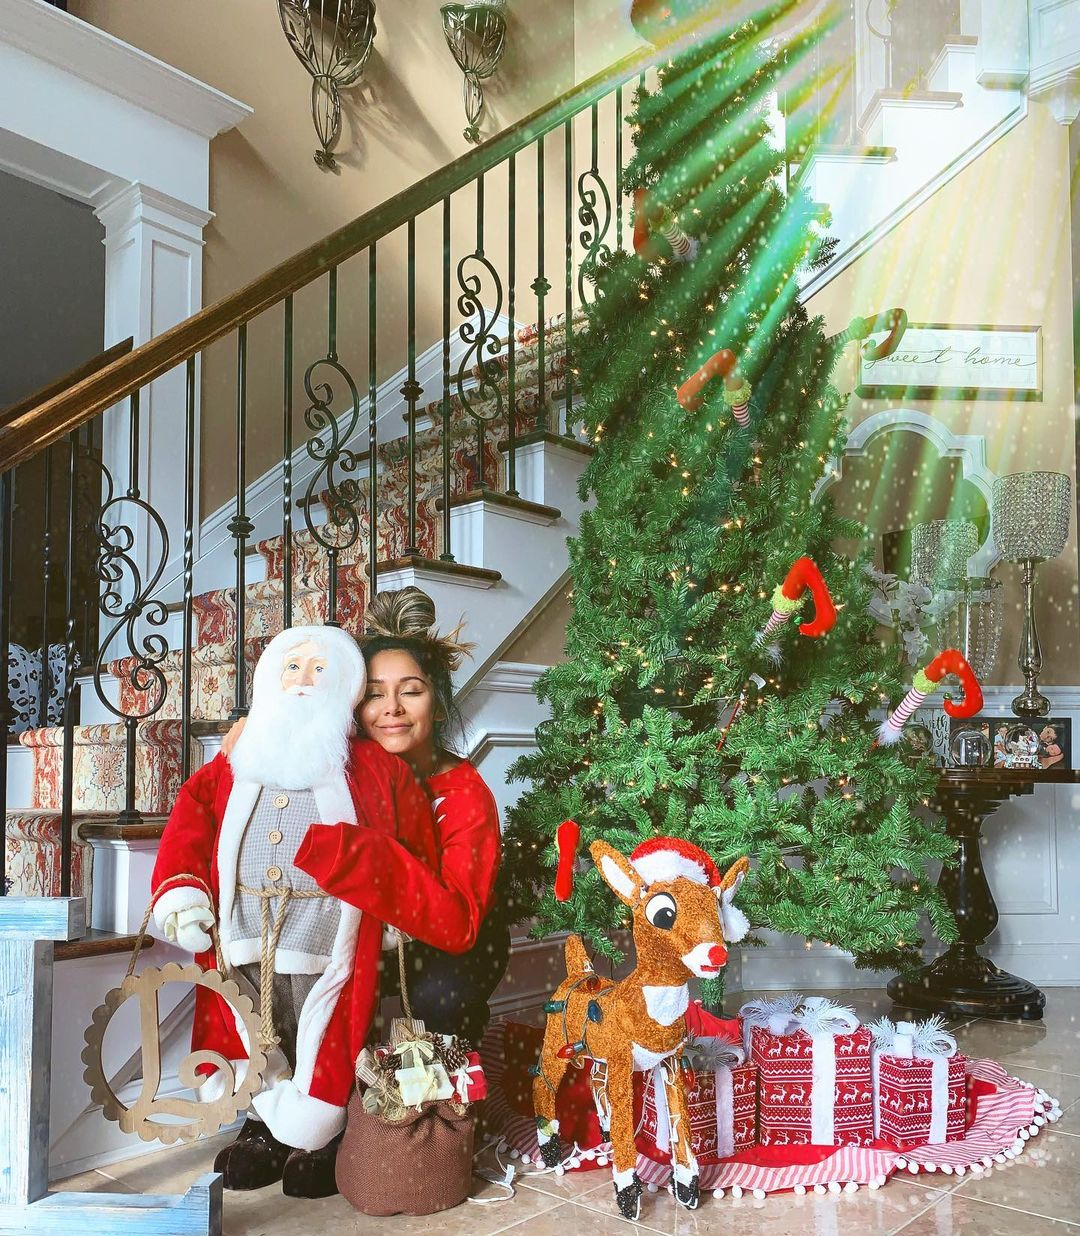 Celebrity Holiday Decorations Of 2020 From Modern To Traditional